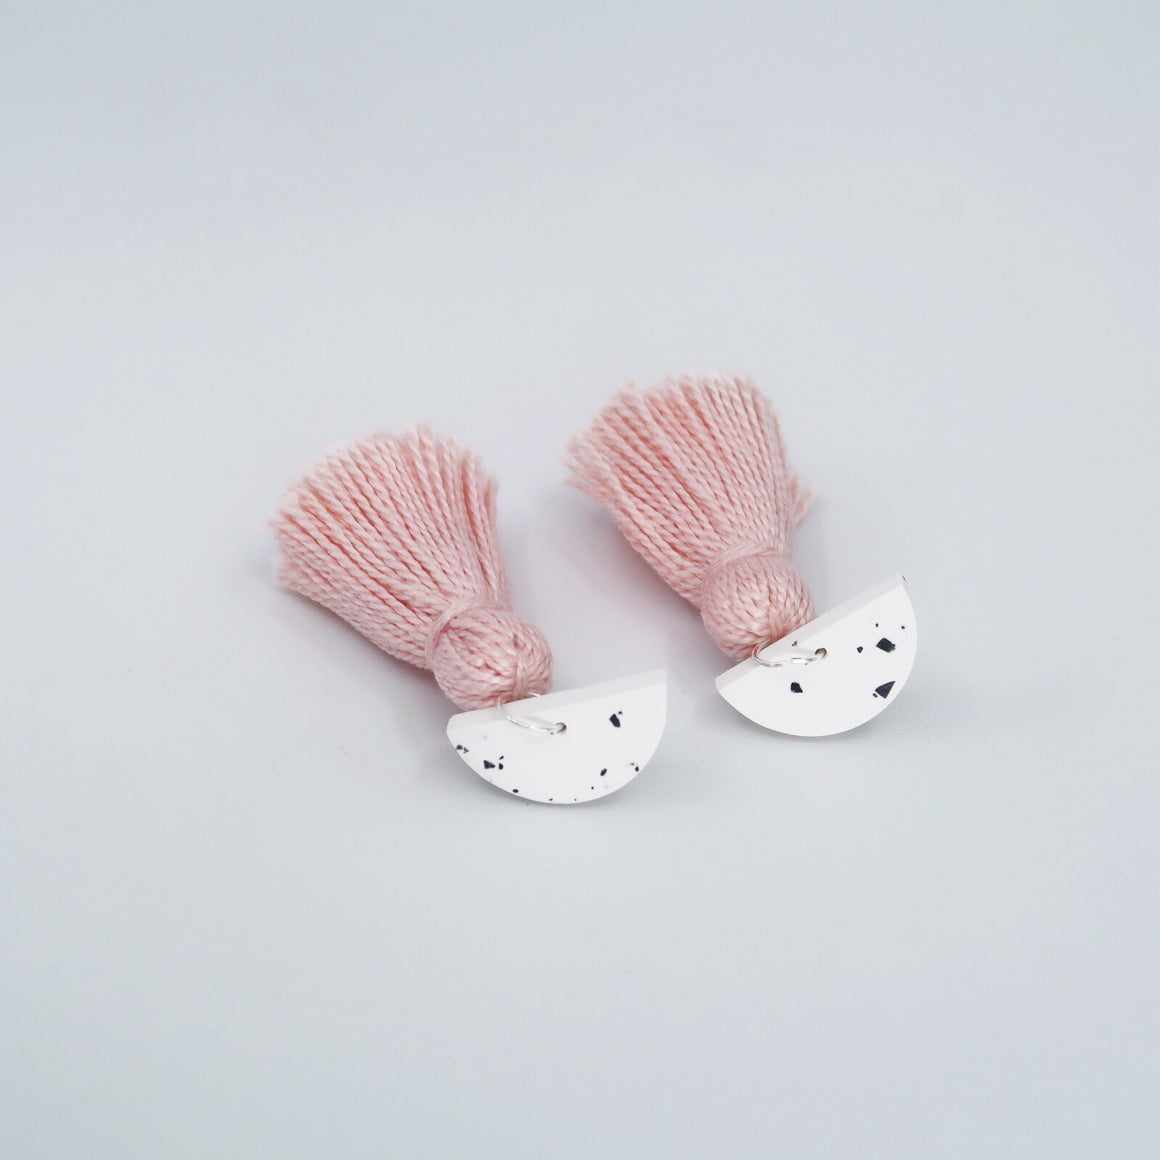 Speckle Tassel Earrings - Blush